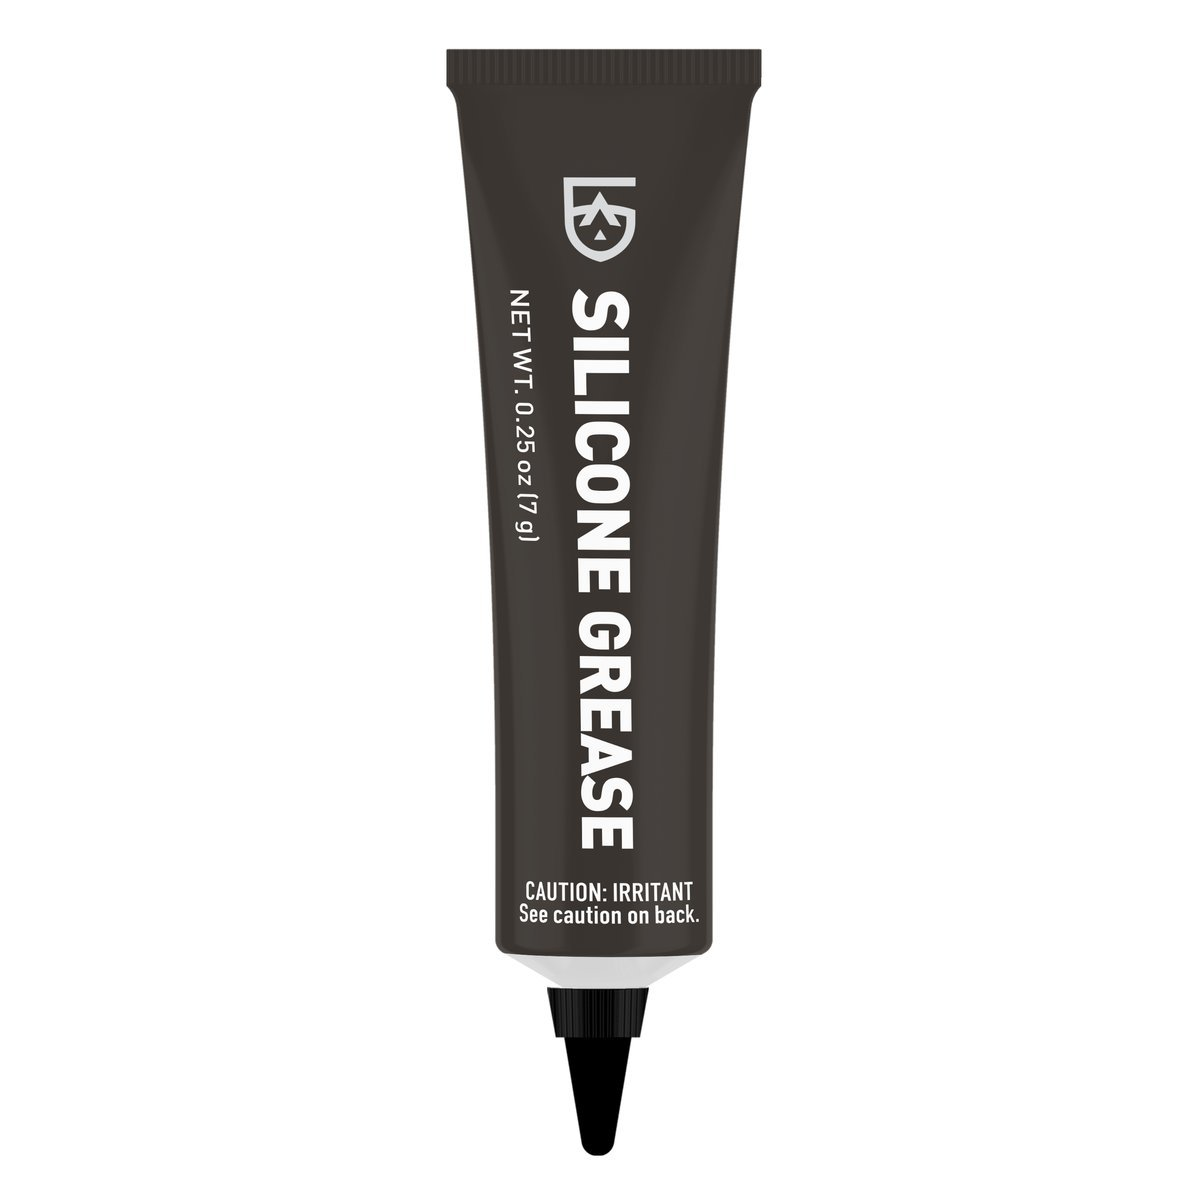 GEAR AID (MCNETT)SILICONE GREASE 1/4 OZ BLISTERED